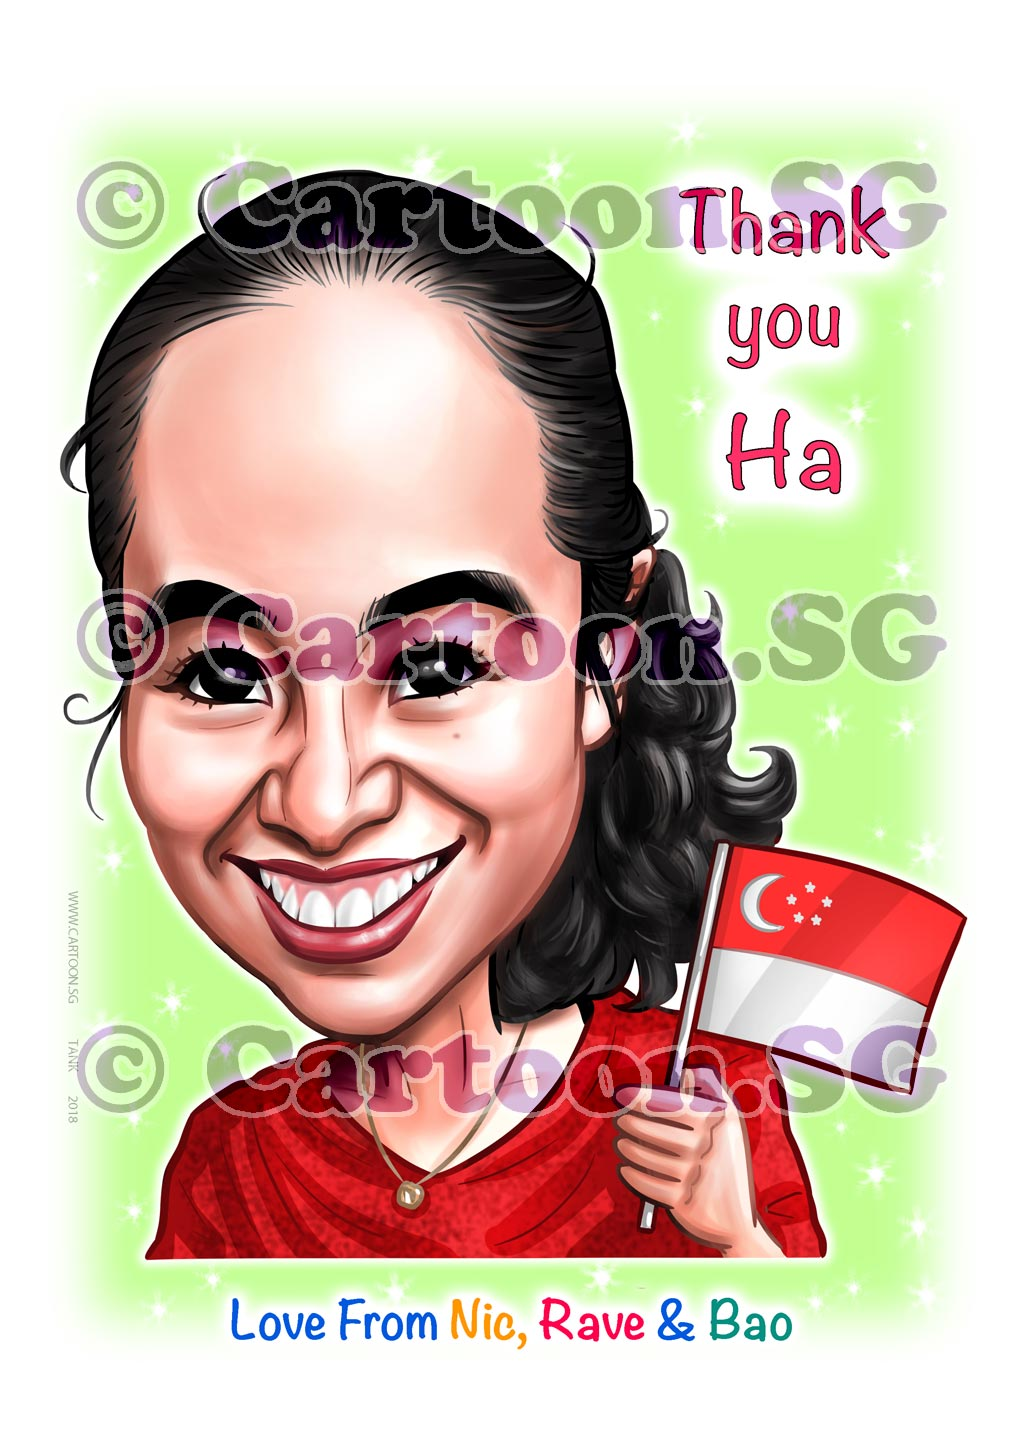 20180319-Caricature-Singapore-digital-mugshot-singapore-flag.jpg